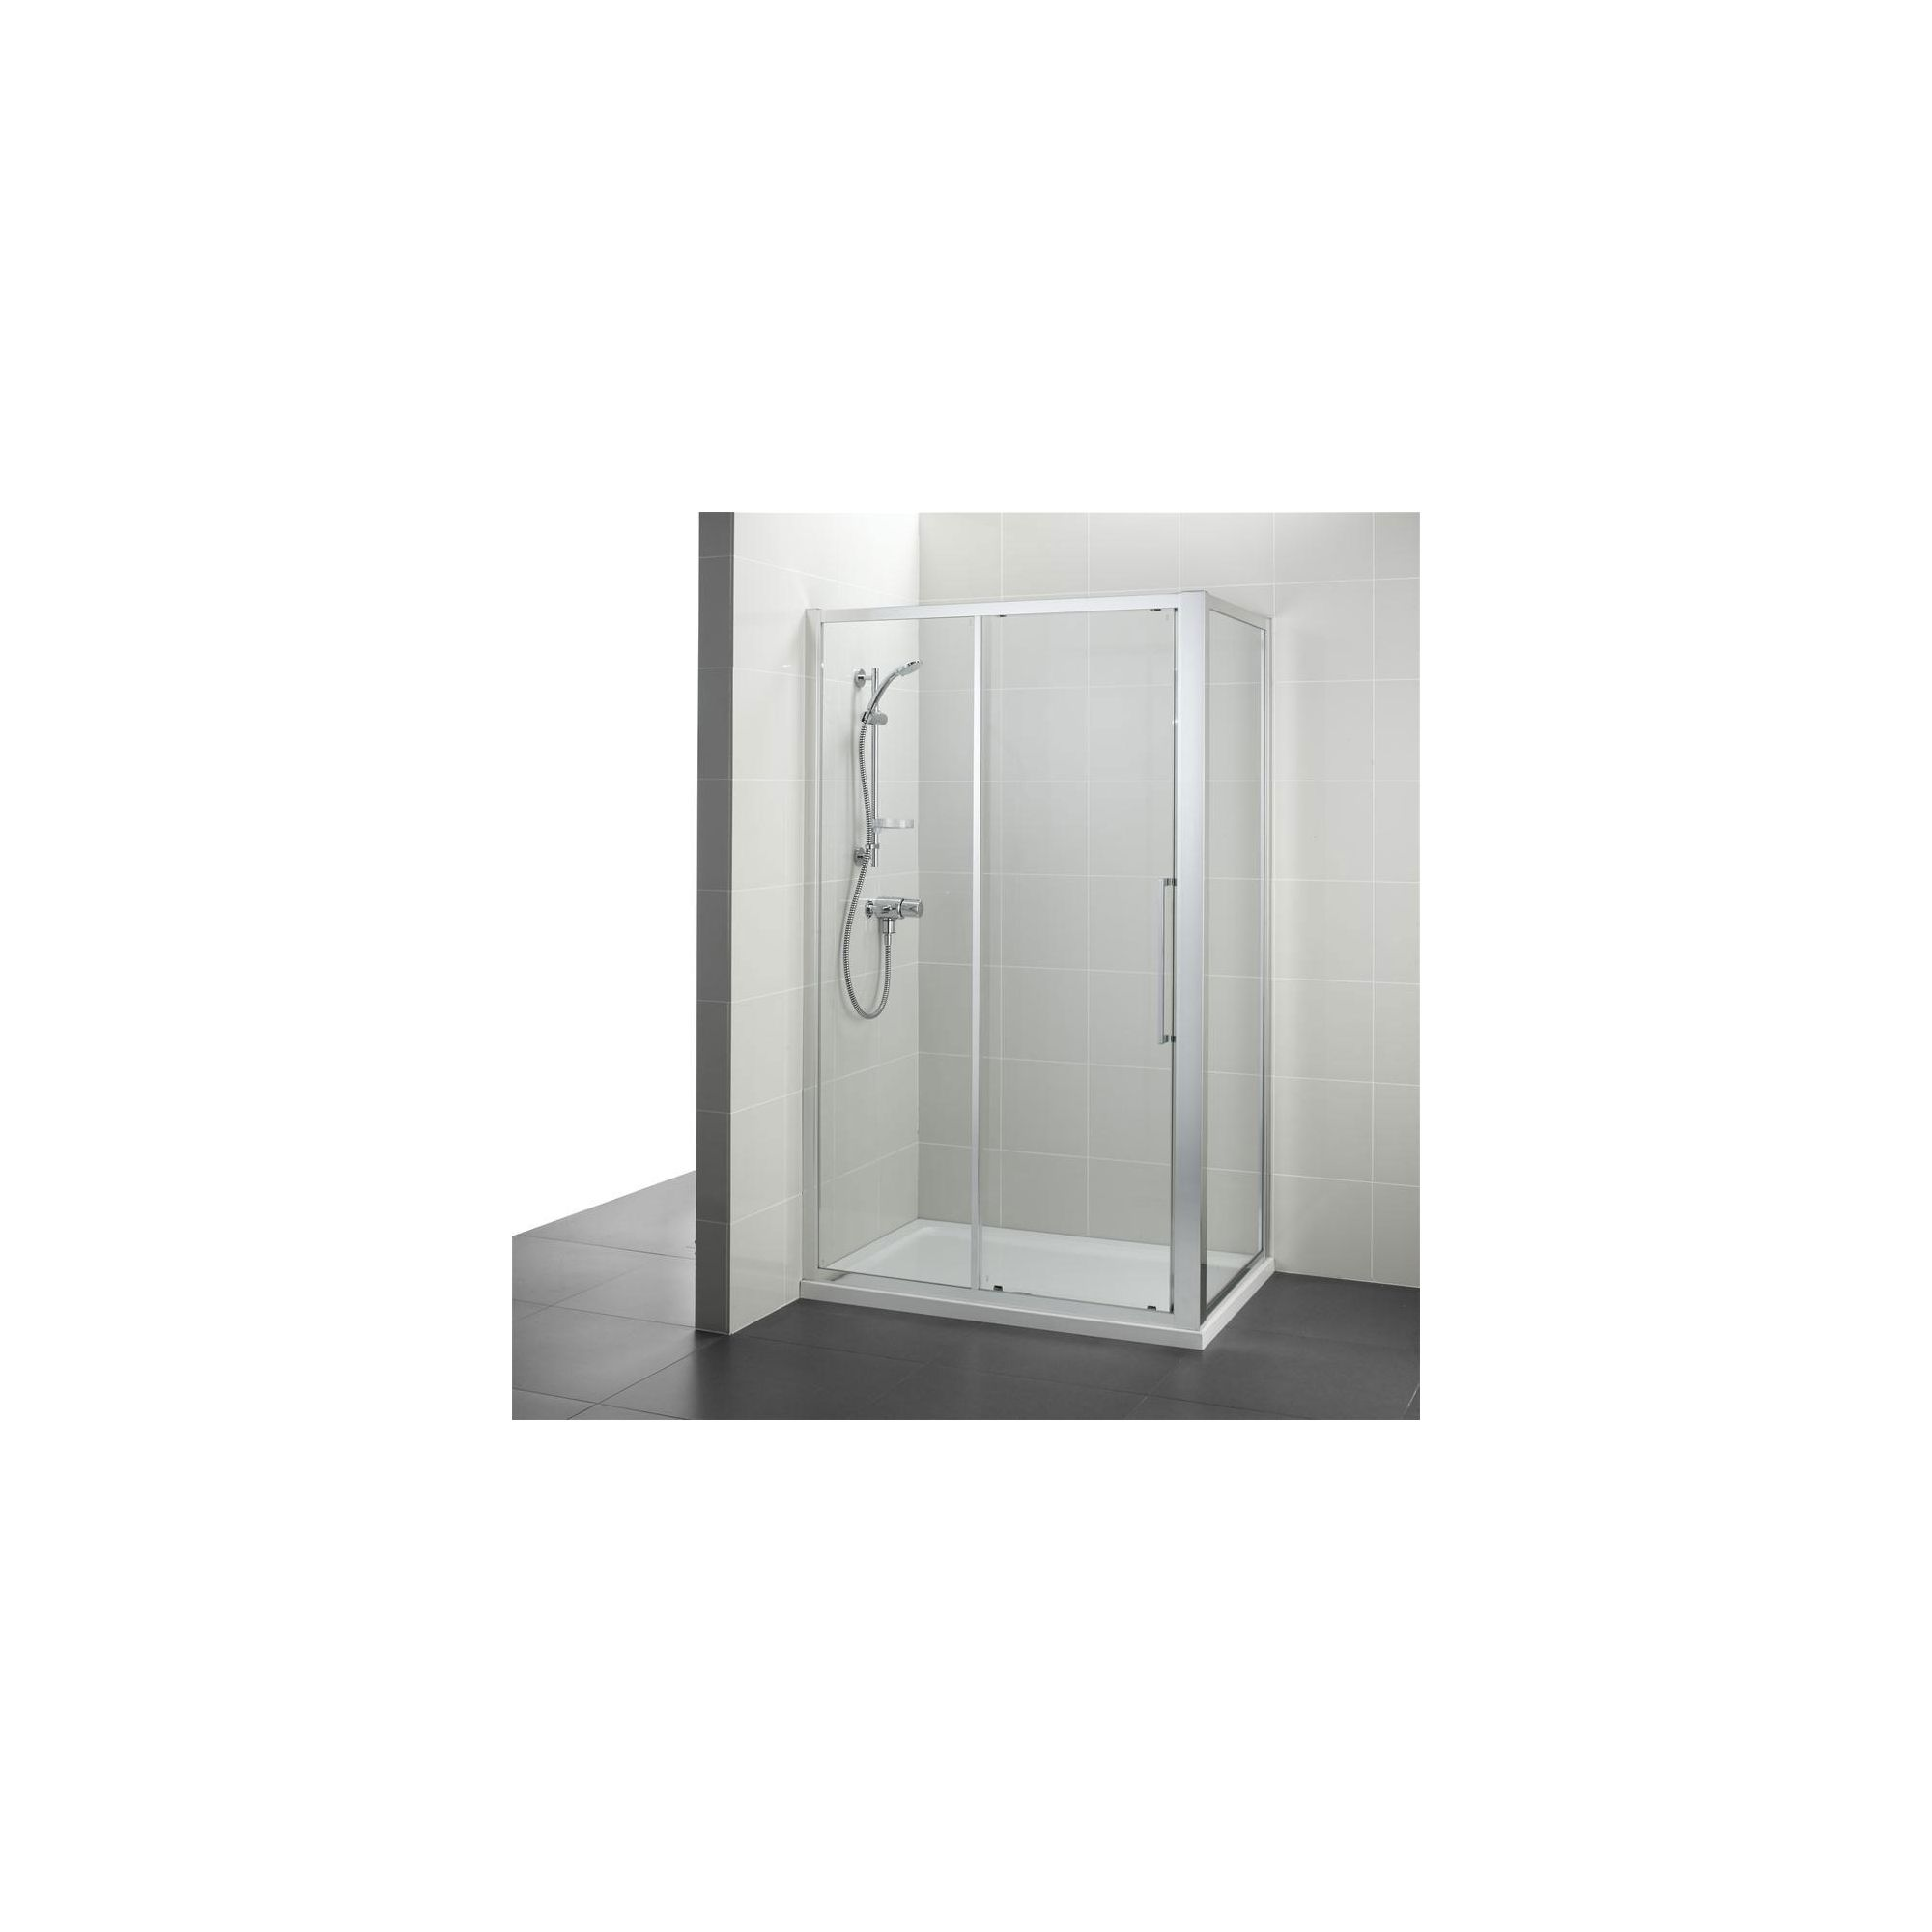 Ideal Standard Kubo Sliding Door Shower Enclosure, 1200mm x 900mm, Bright Silver Frame, Low Profile Tray at Tesco Direct